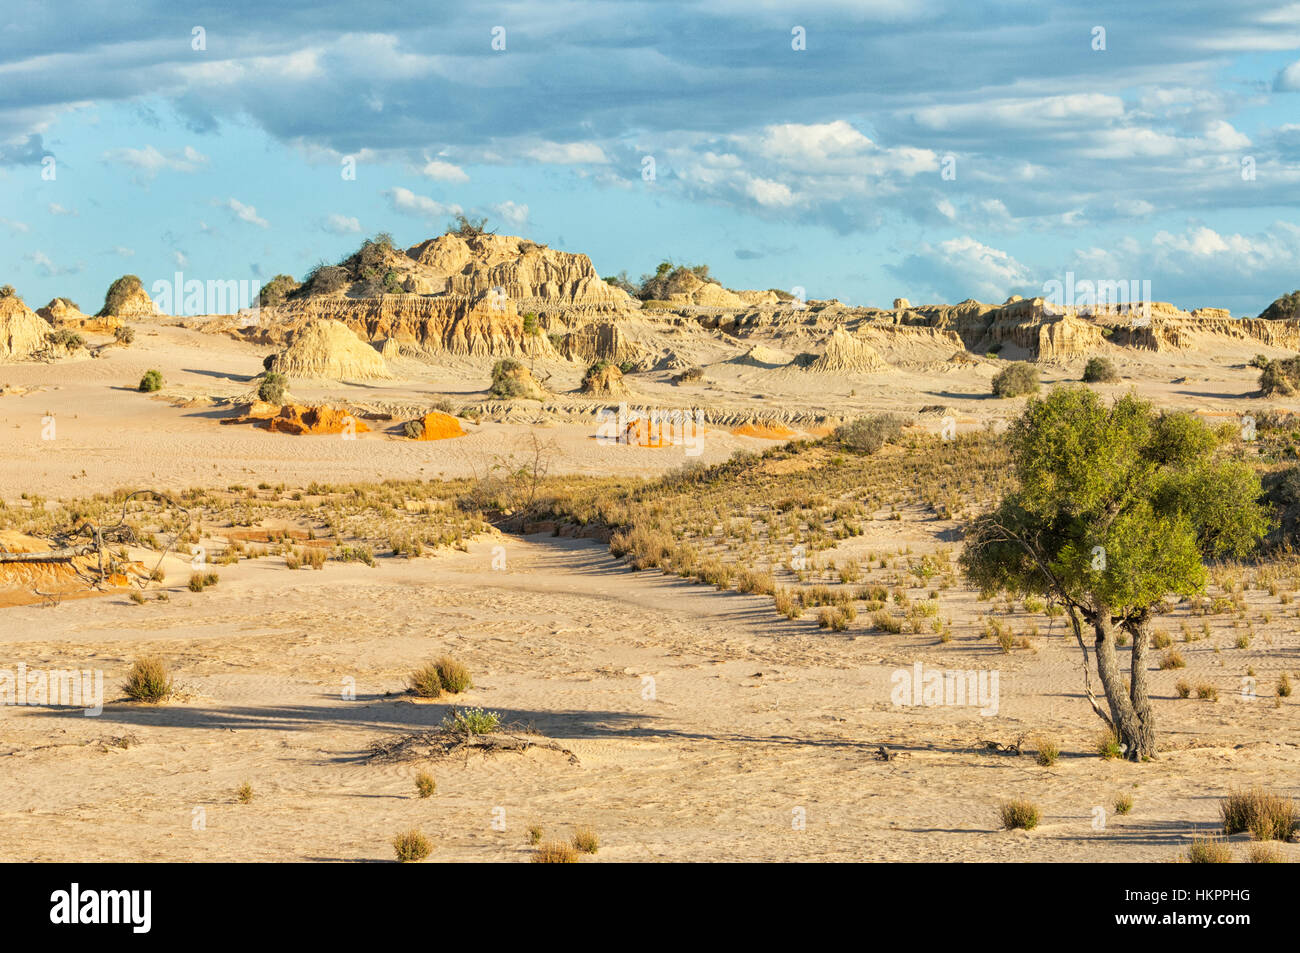 View of the Lunette, Mungo National Park, New South Wales, Australia - Stock Image